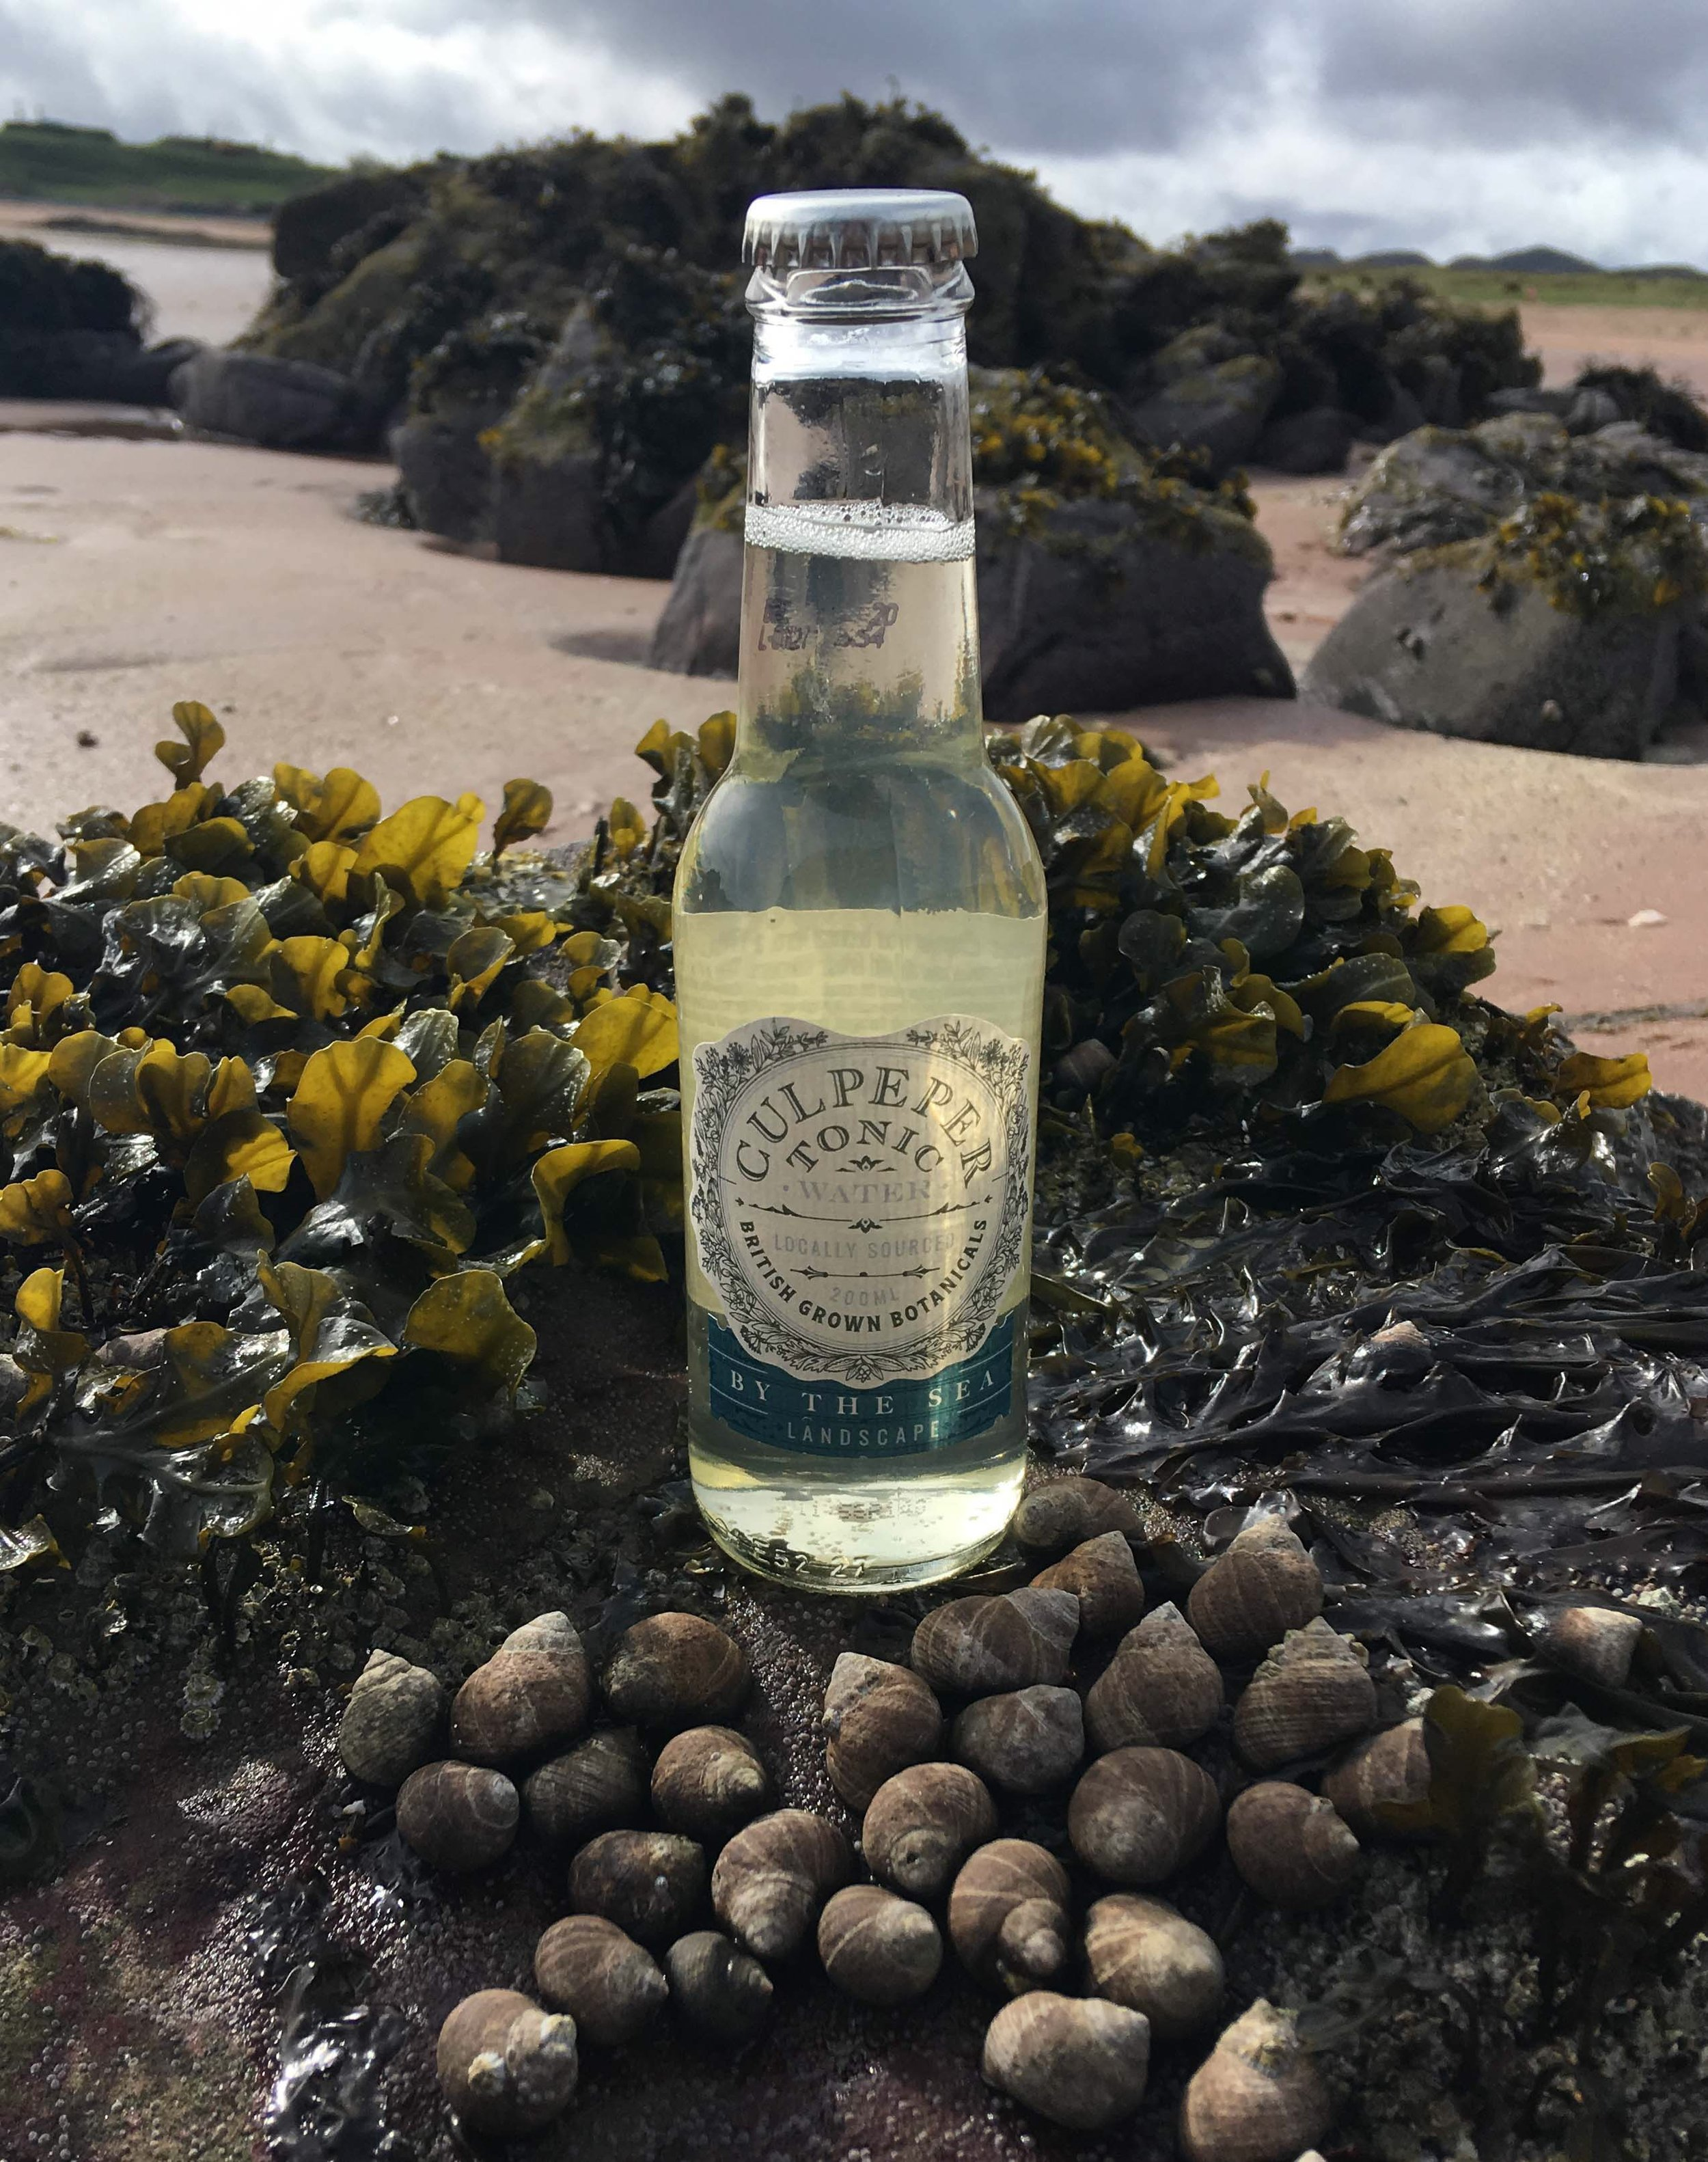 by the sea - By the Sea combines samphire with sugar kelp to create a unique tonic that is refreshingly smooth and citrusy with a hint of sea-salt.By the Sea is a versatile tonic water which works well with most gins and vodkas. It is particularly delicious with maritime or citrus spirits. Some of our favourite combinations are Harris Gin, Edinburgh Gin Seaside, Hills and Harbour Gin or Gairloch Coastal Gin (Badachro distillery)